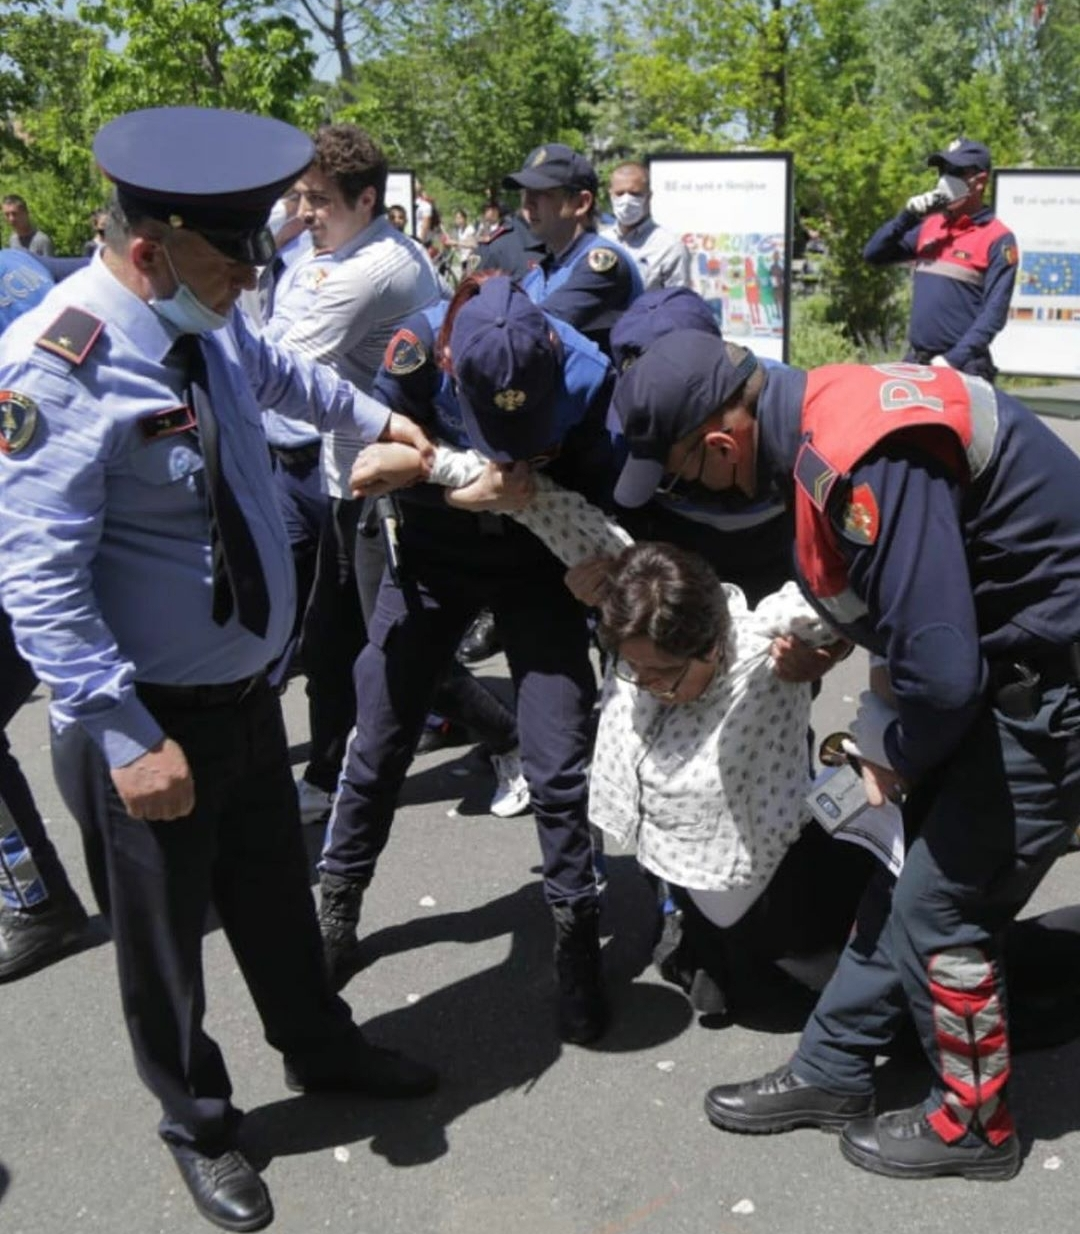 Albanian Civil Society Protest Forcibly Dispersed by Police